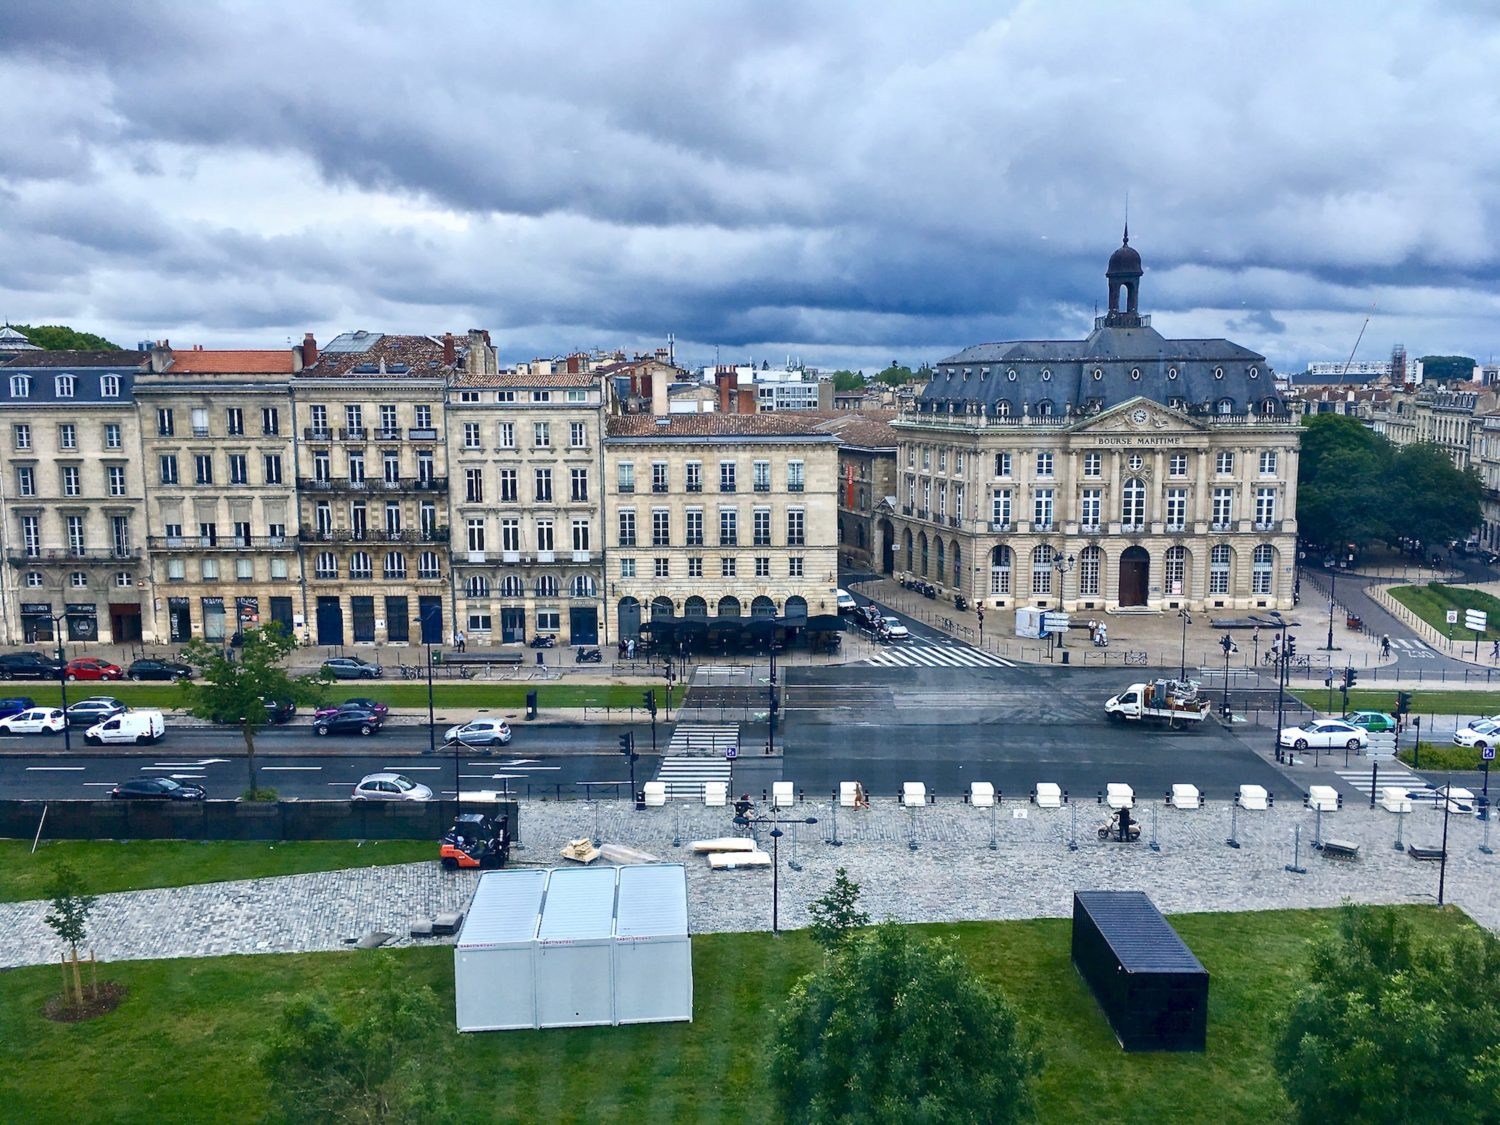 BORDEAUX BOURSE MARITIME